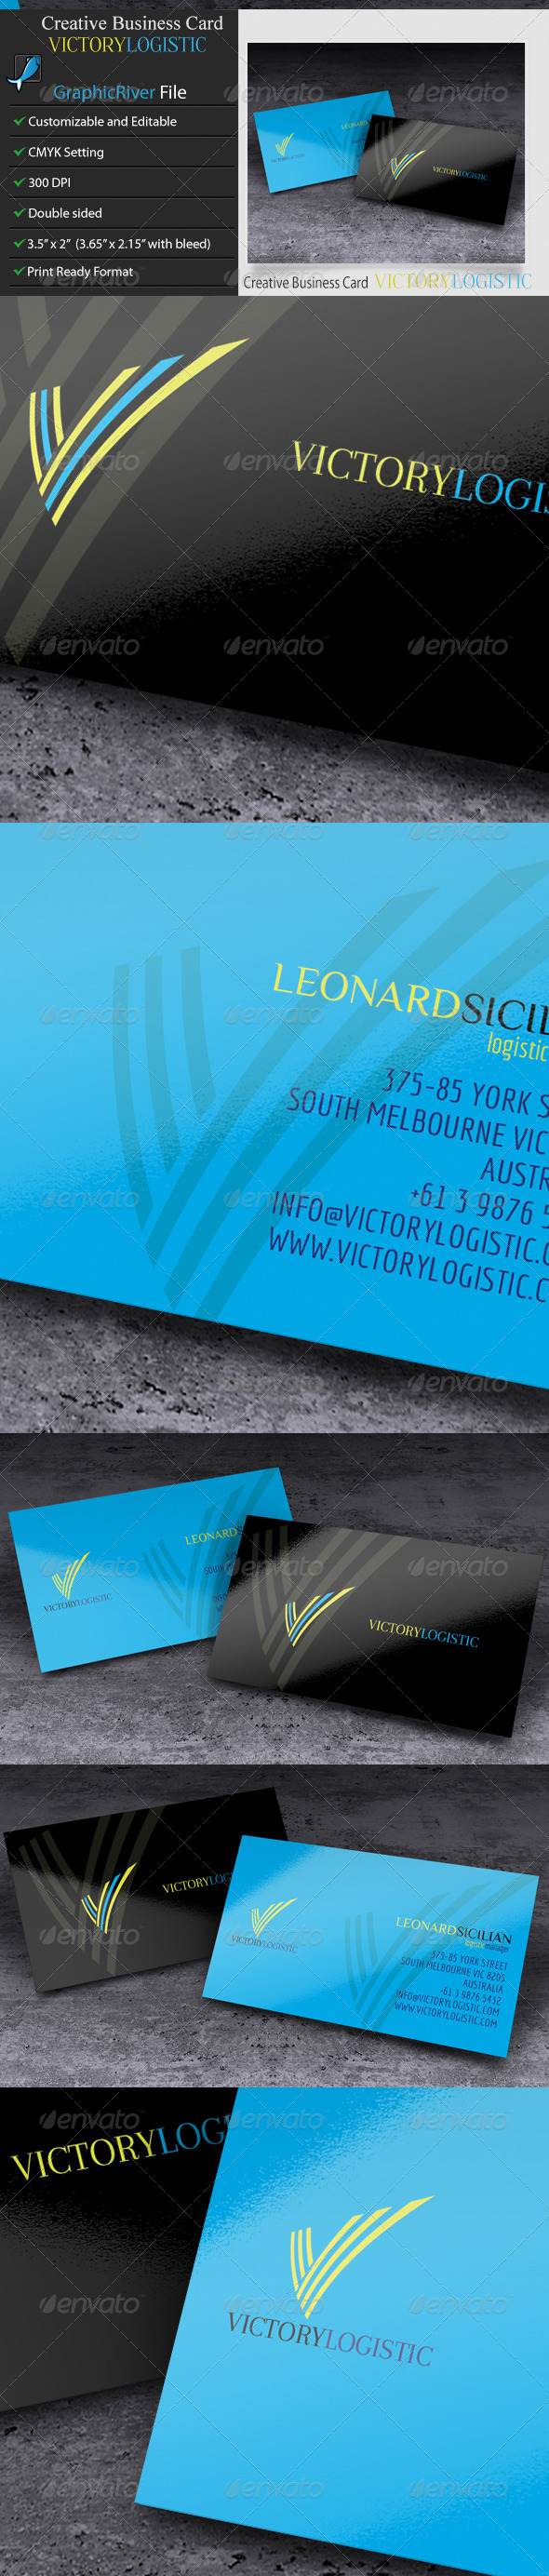 Creative Business Card Victory Logistic